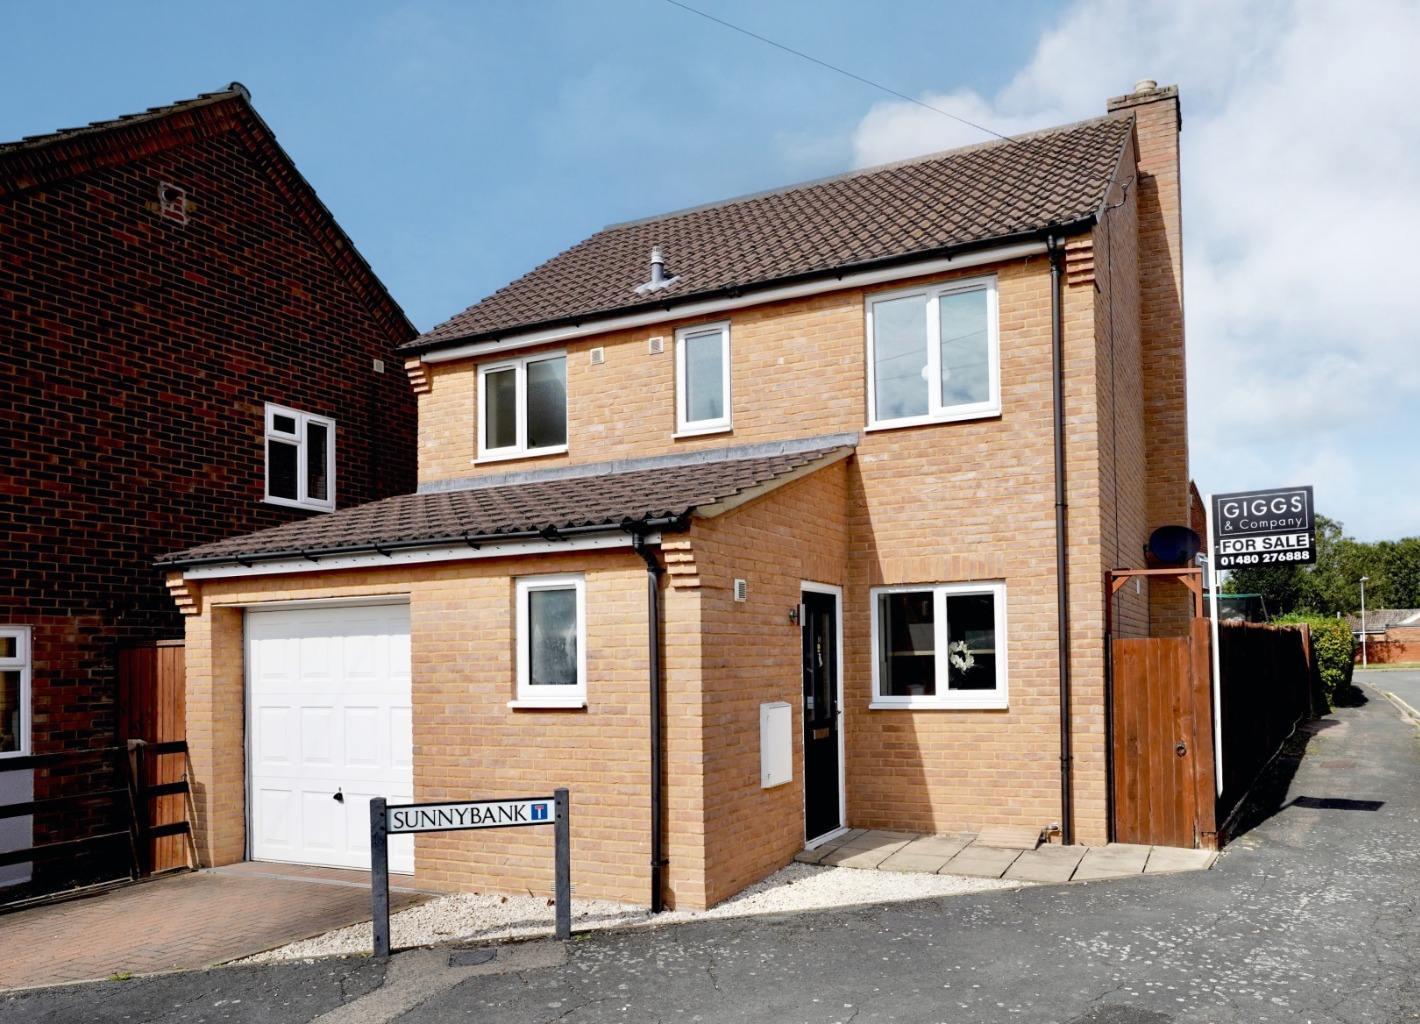 3 bed detached house for sale in Green End Road, St. Neots - Property Image 1